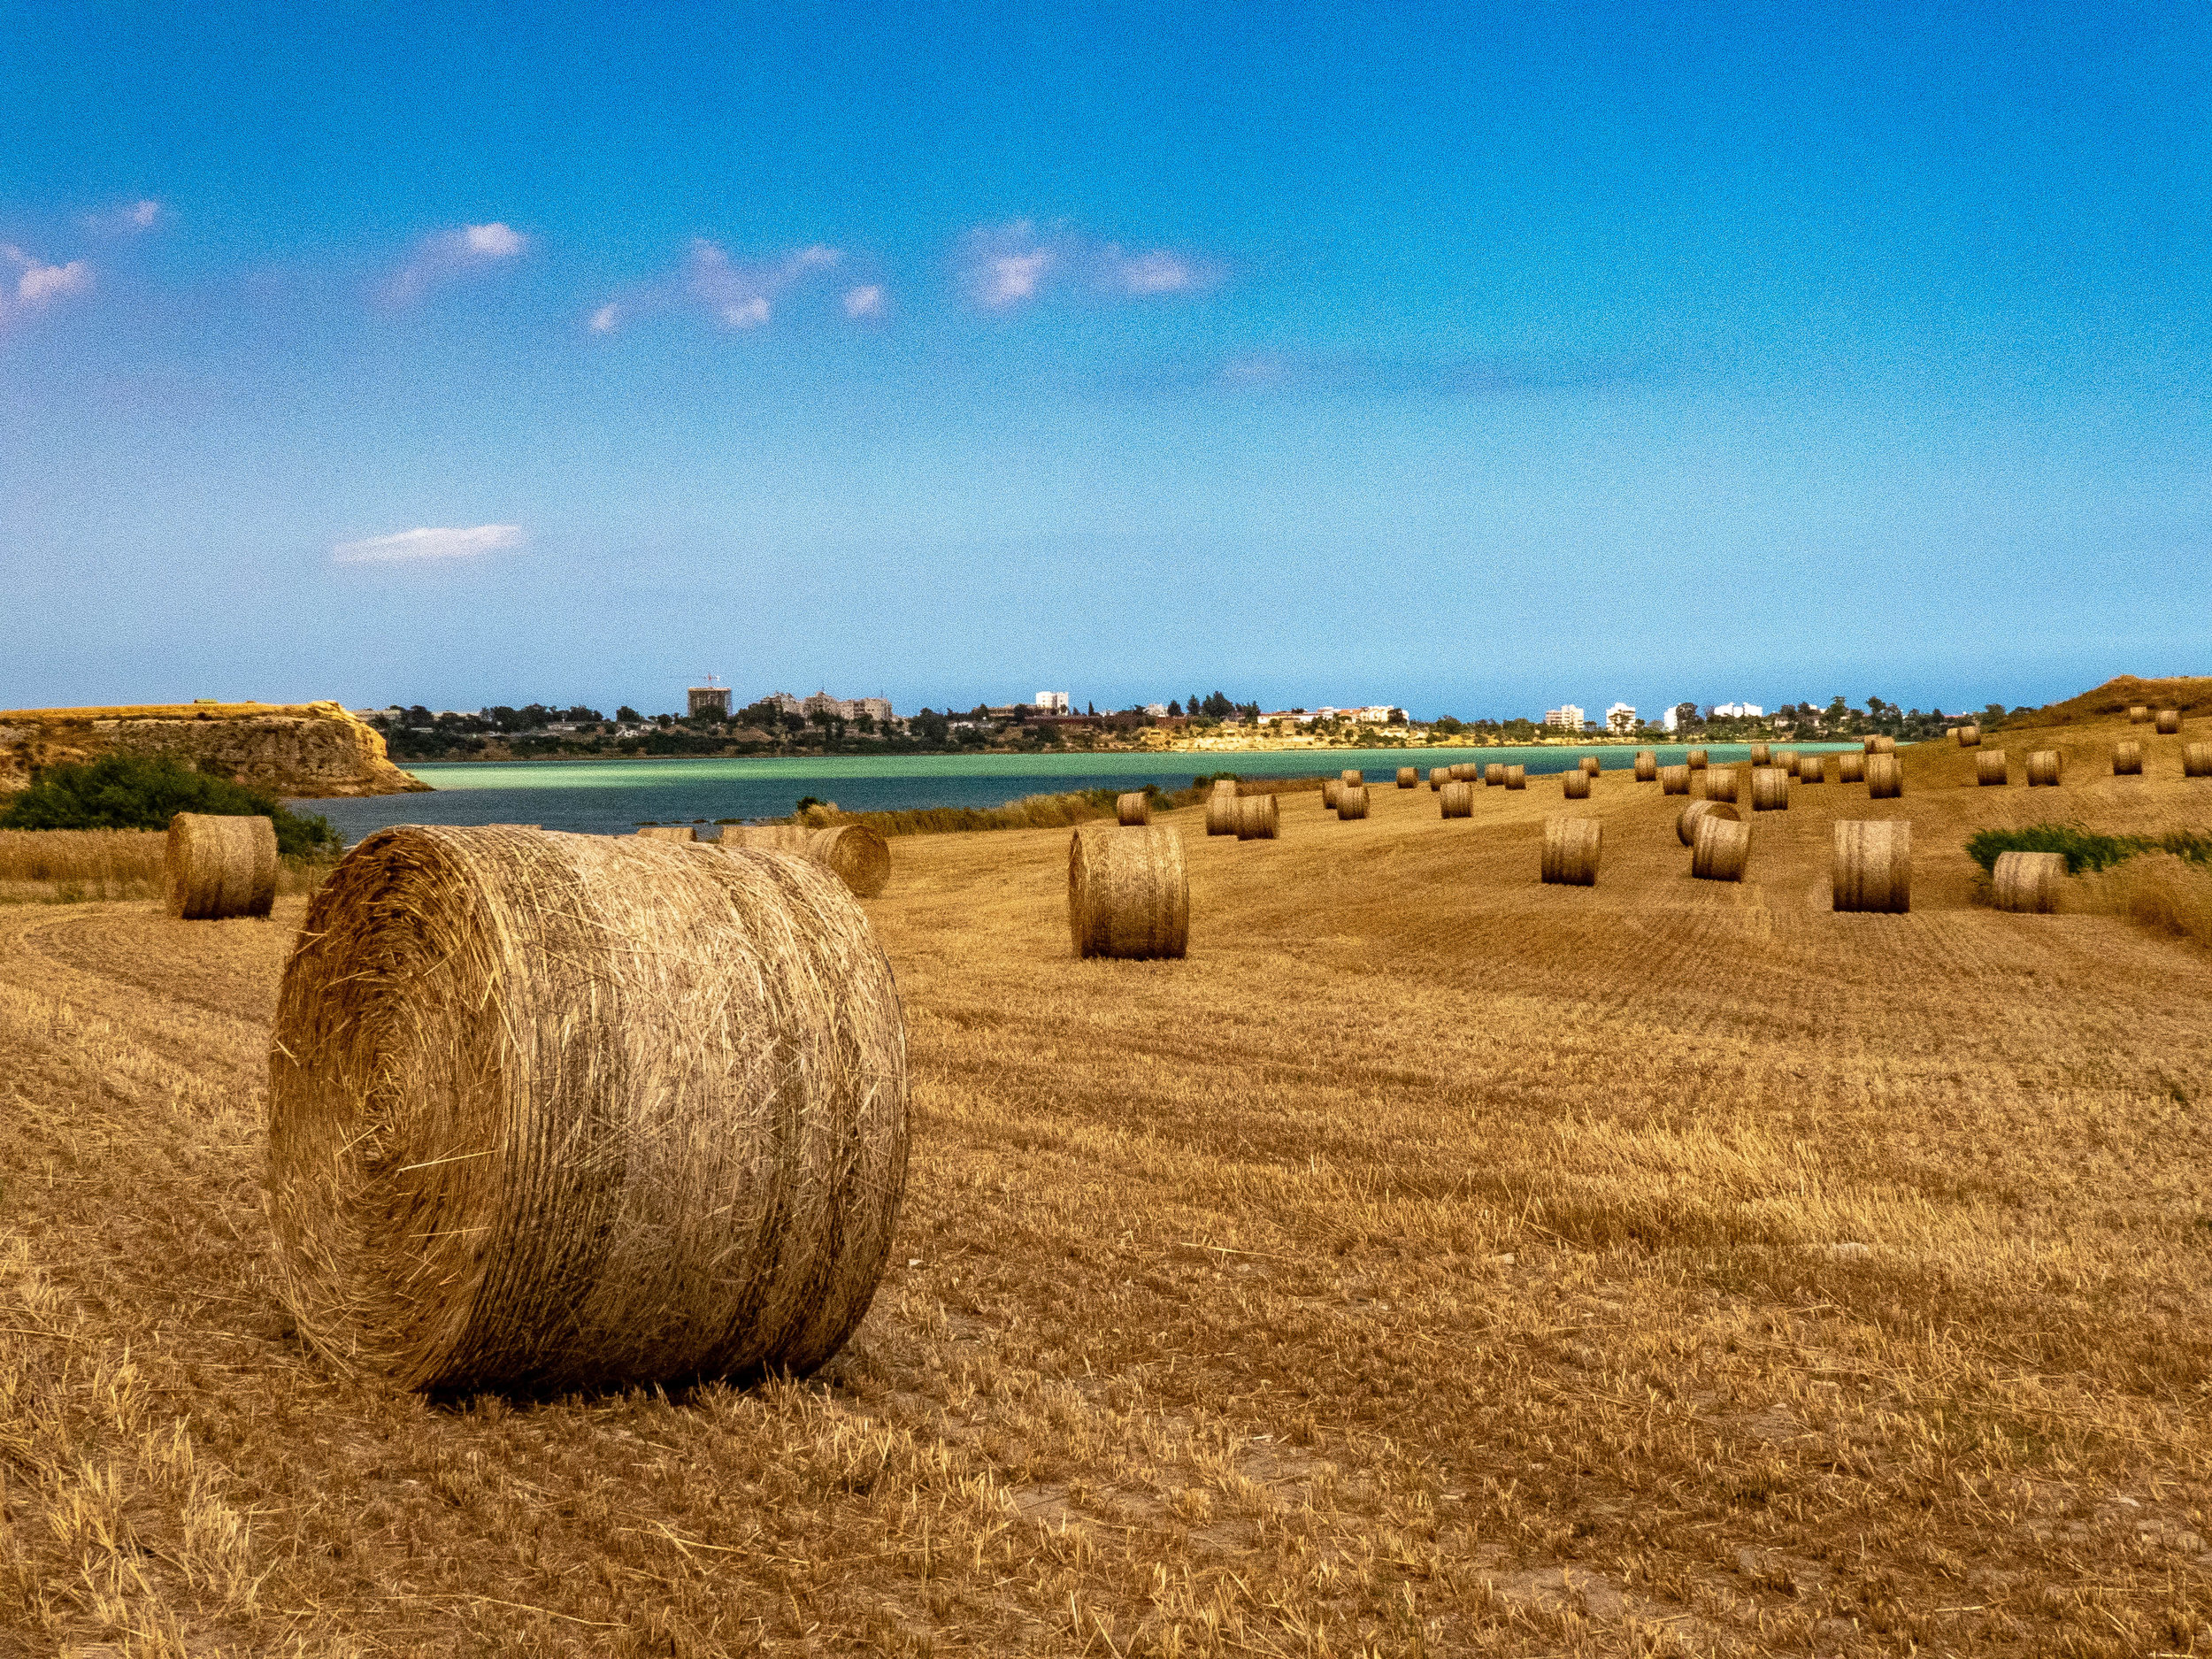 Hay bales everywhere